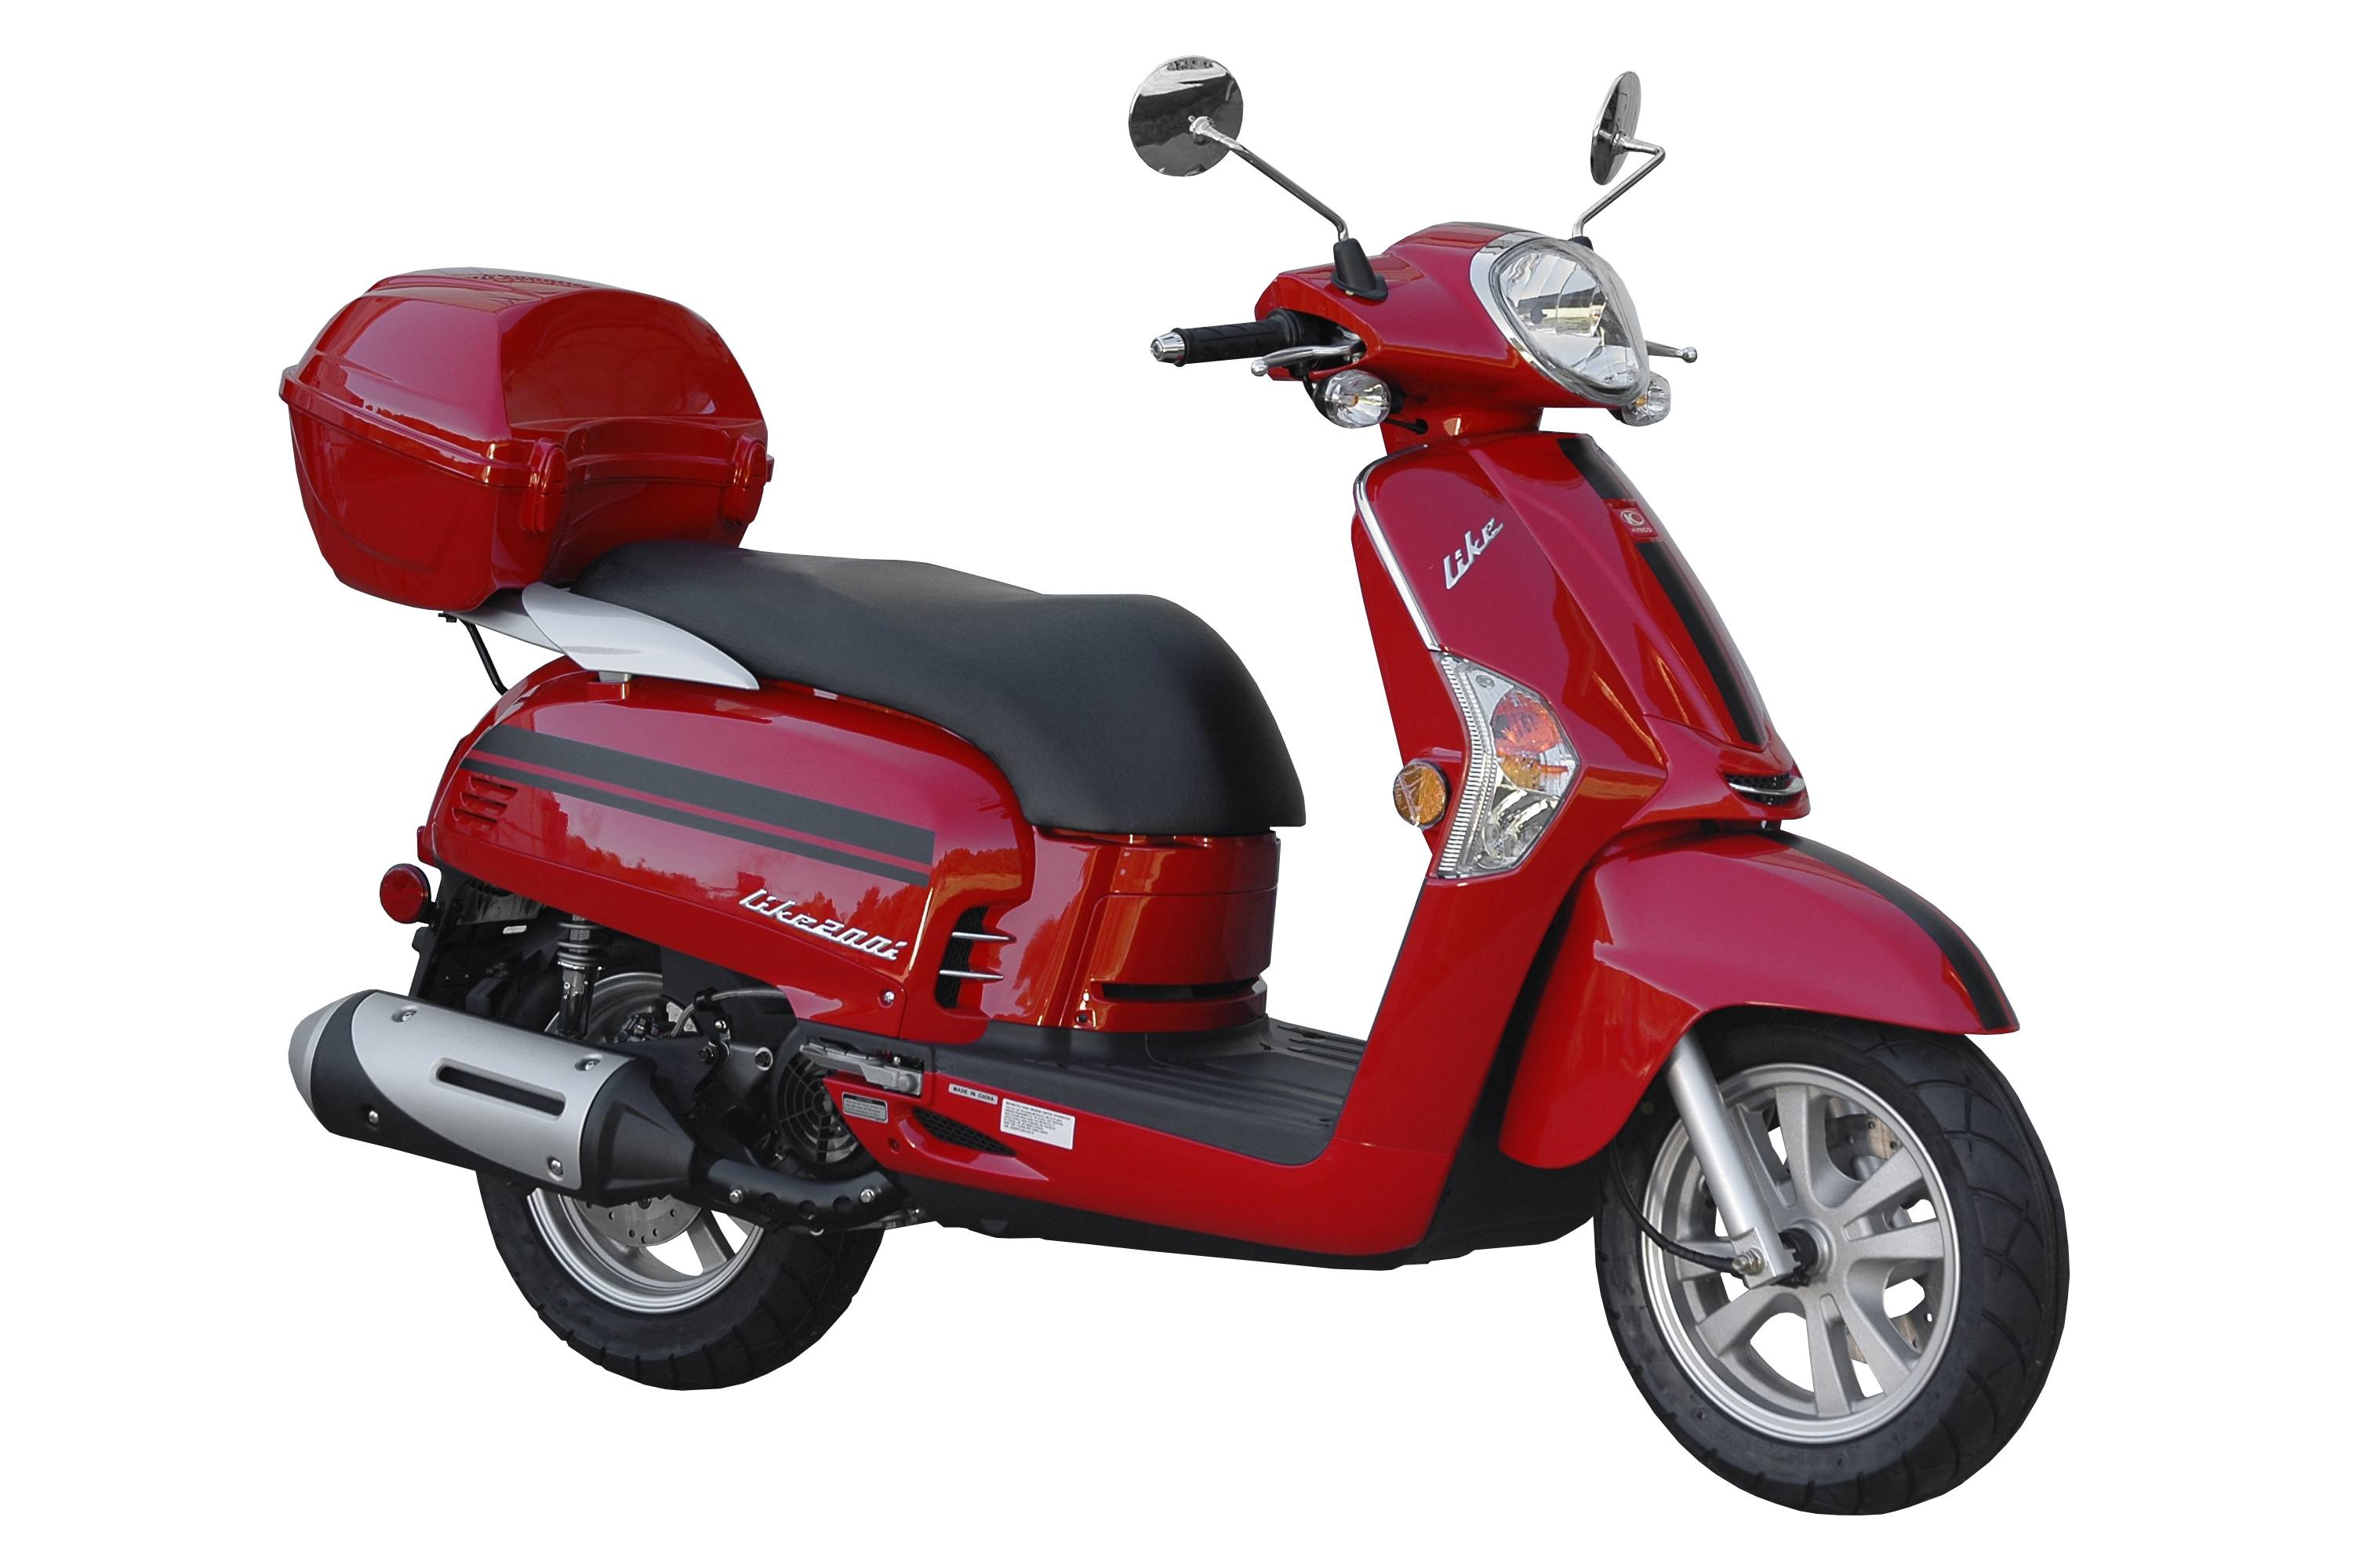 2016 kymco like 200i scooters traverse city michigan like200i. Black Bedroom Furniture Sets. Home Design Ideas